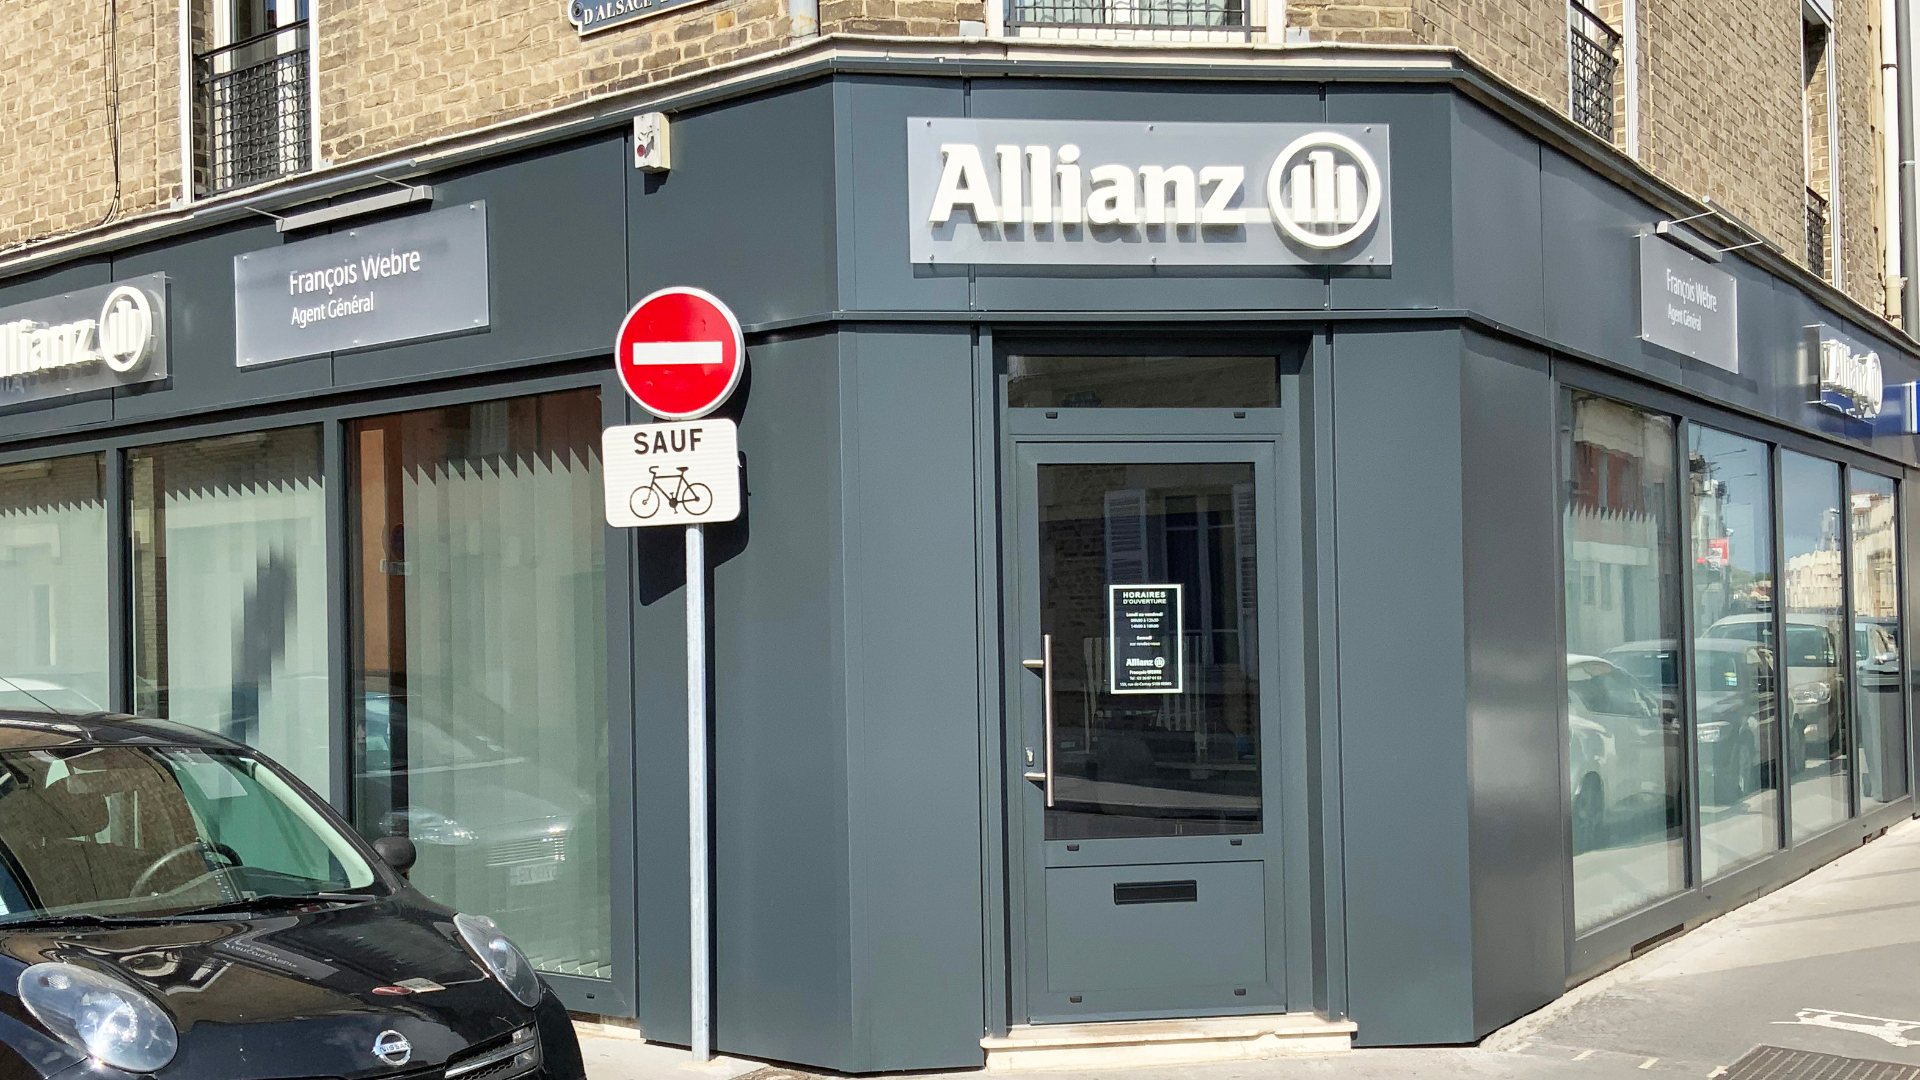 Allianz REIMS CERNAY - Francois WEBRE